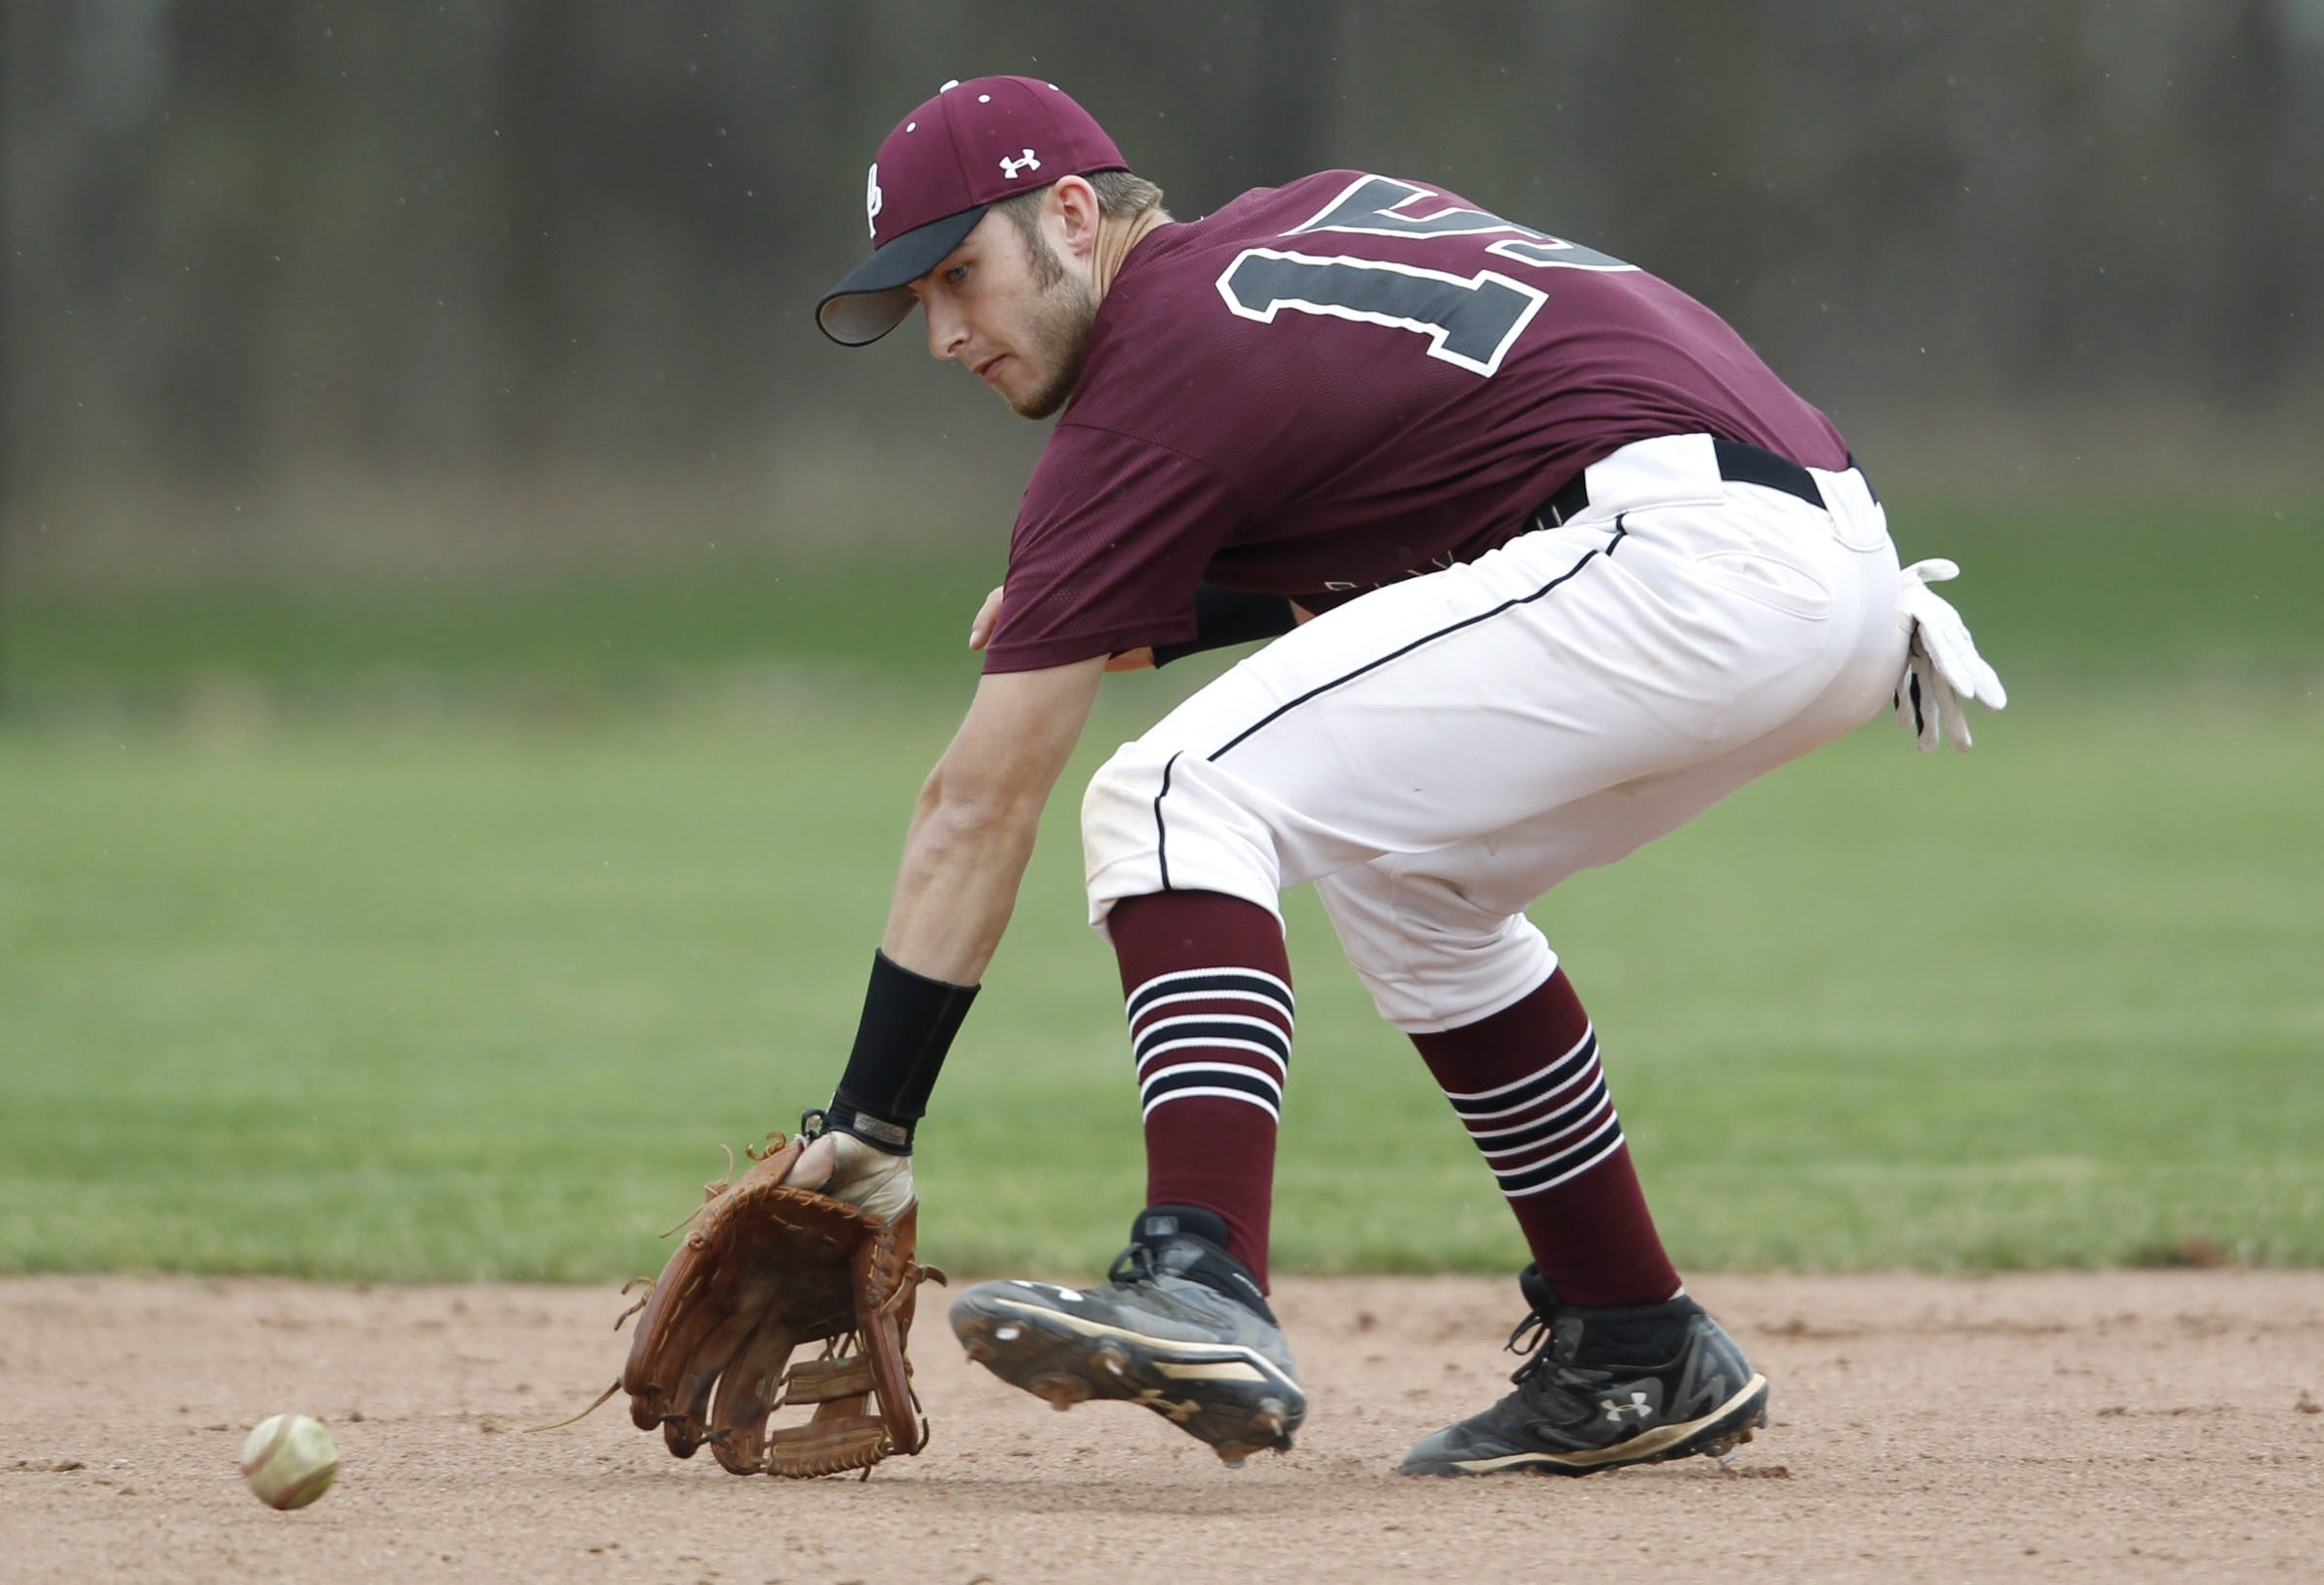 Shortstop Dave Hollins is part of an Orchard Park infield defense that's the best coach Jim Gibson has ever seen in his time coaching with the program.